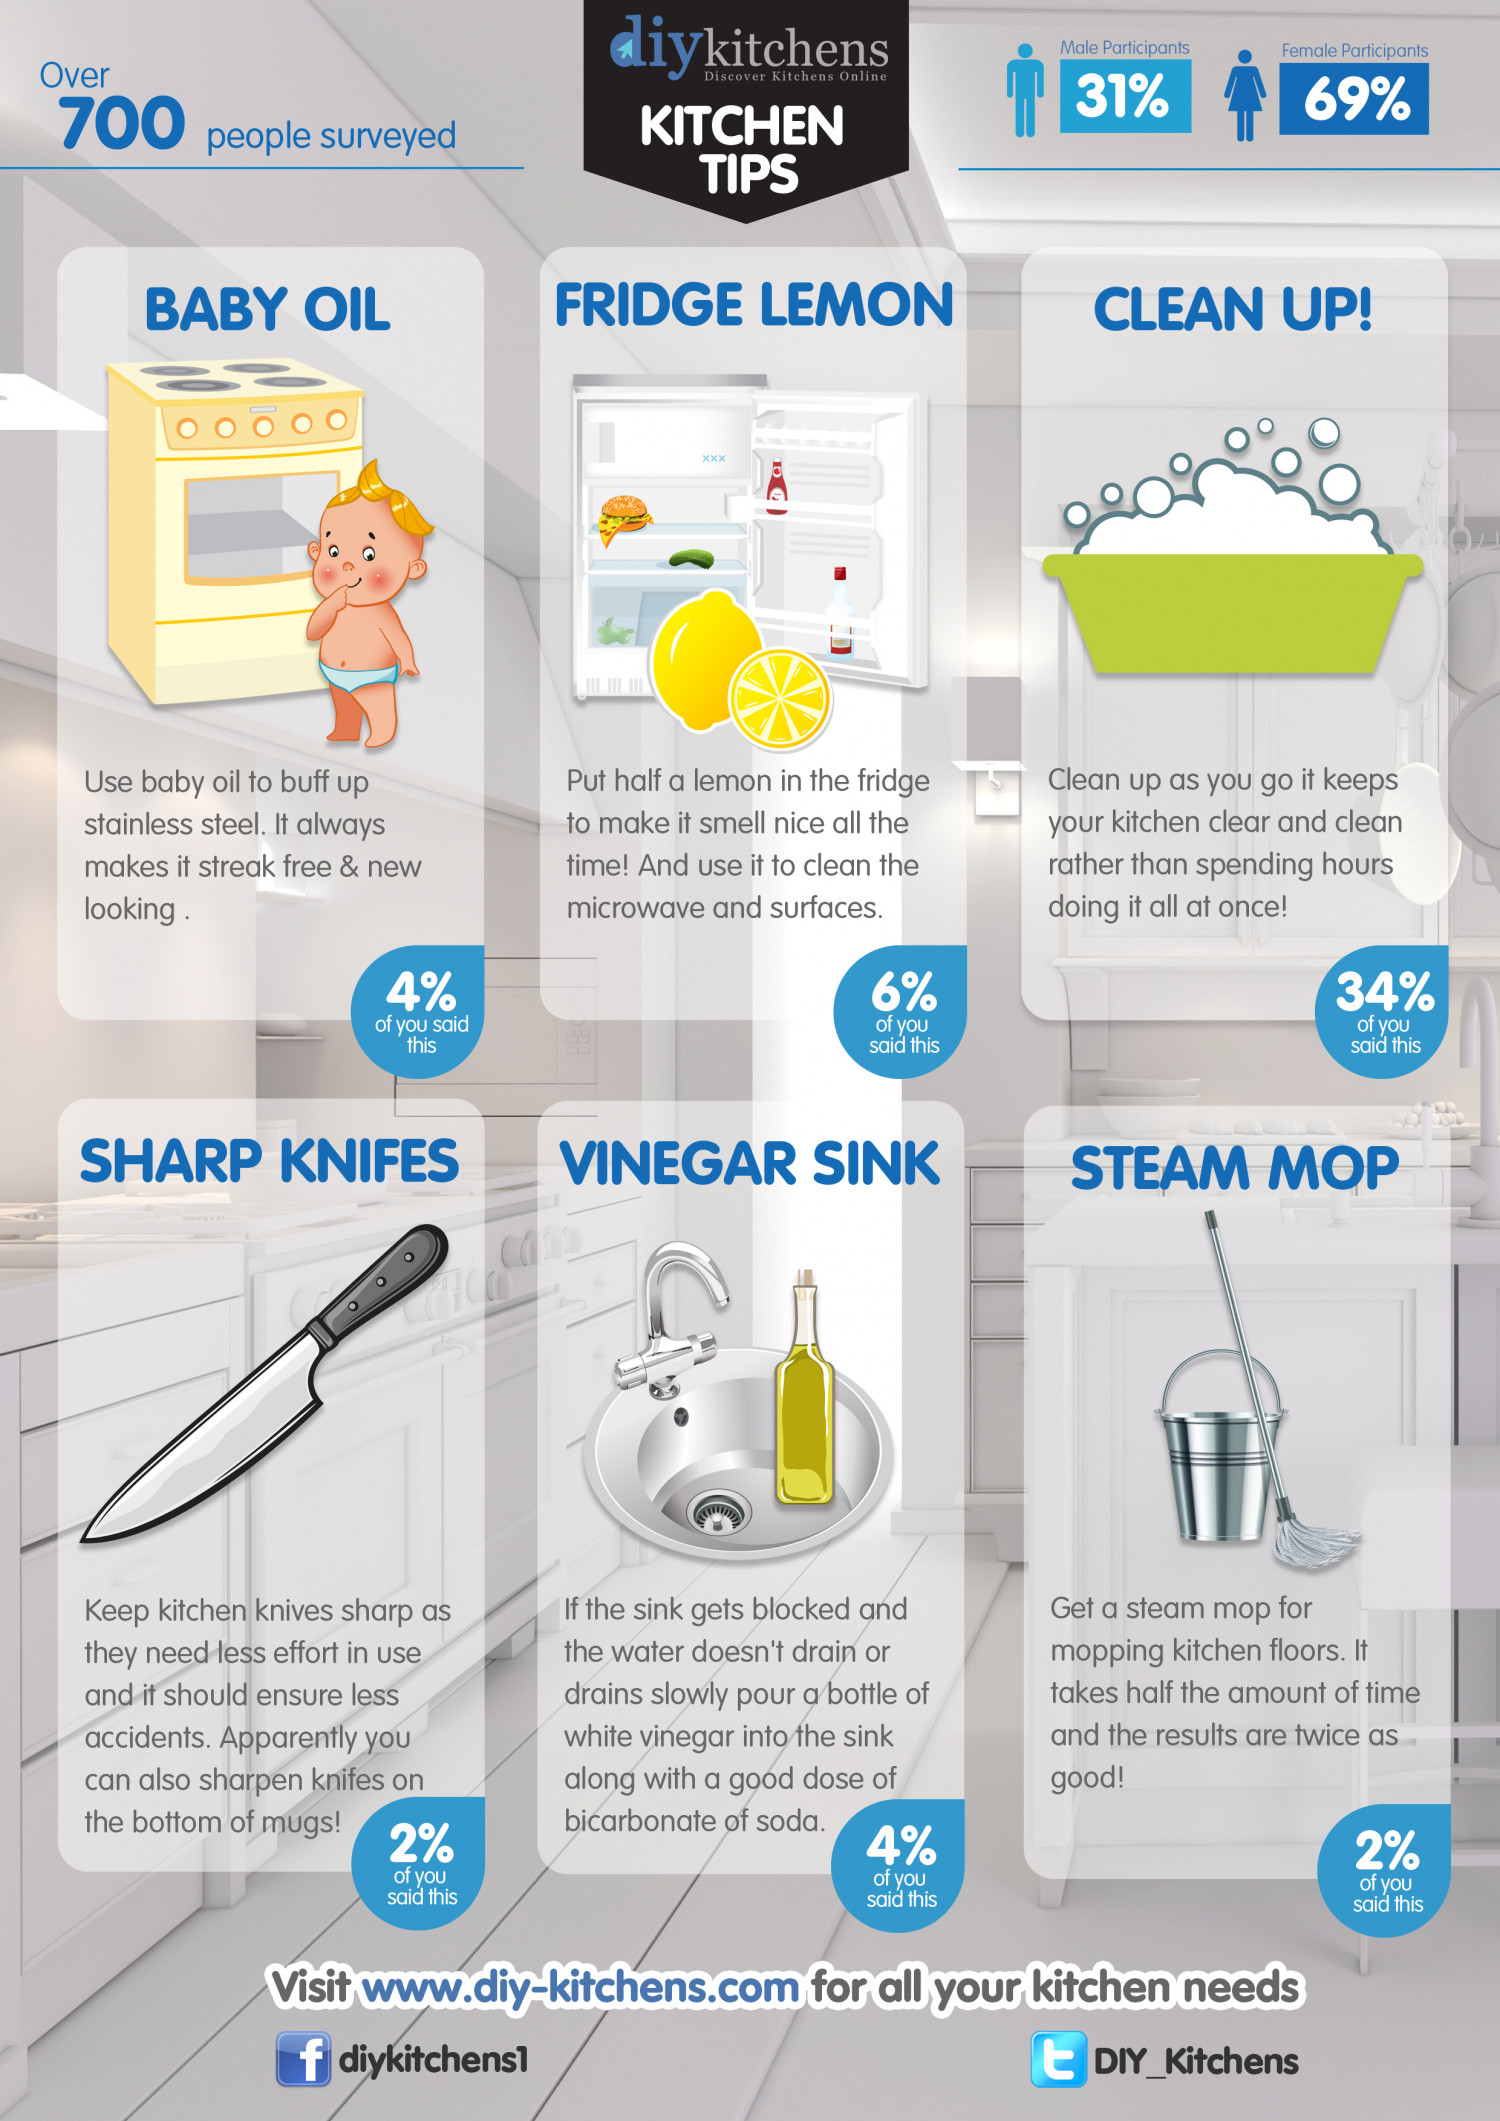 Top Kitchen Tips From DIY Kitchens Infographic